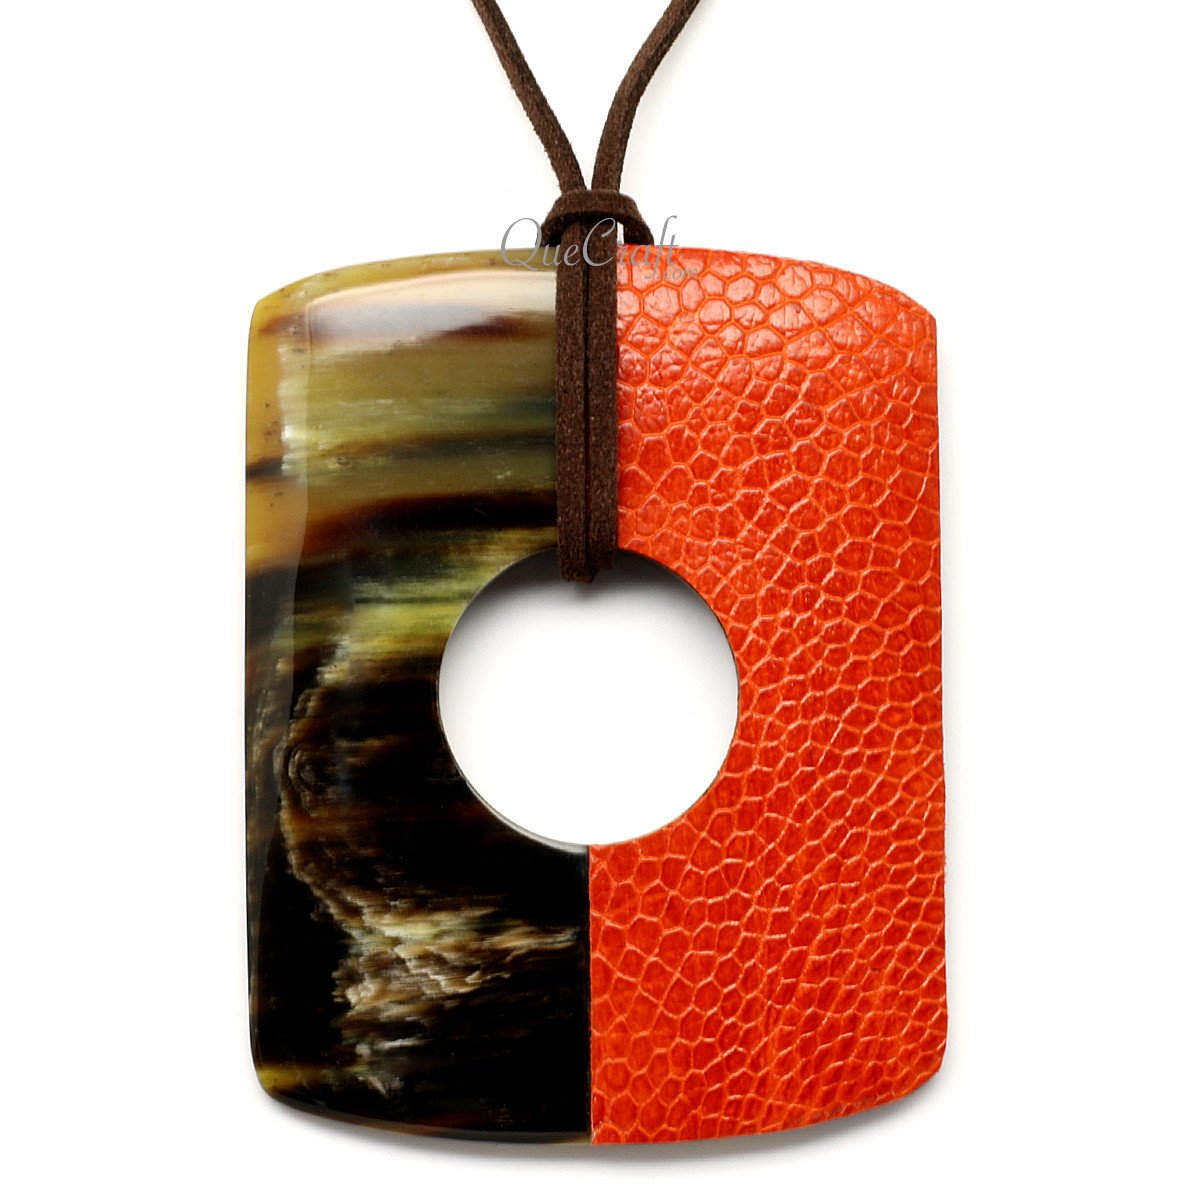 Horn & Leather Pendant #12517 - HORN.JEWELRY